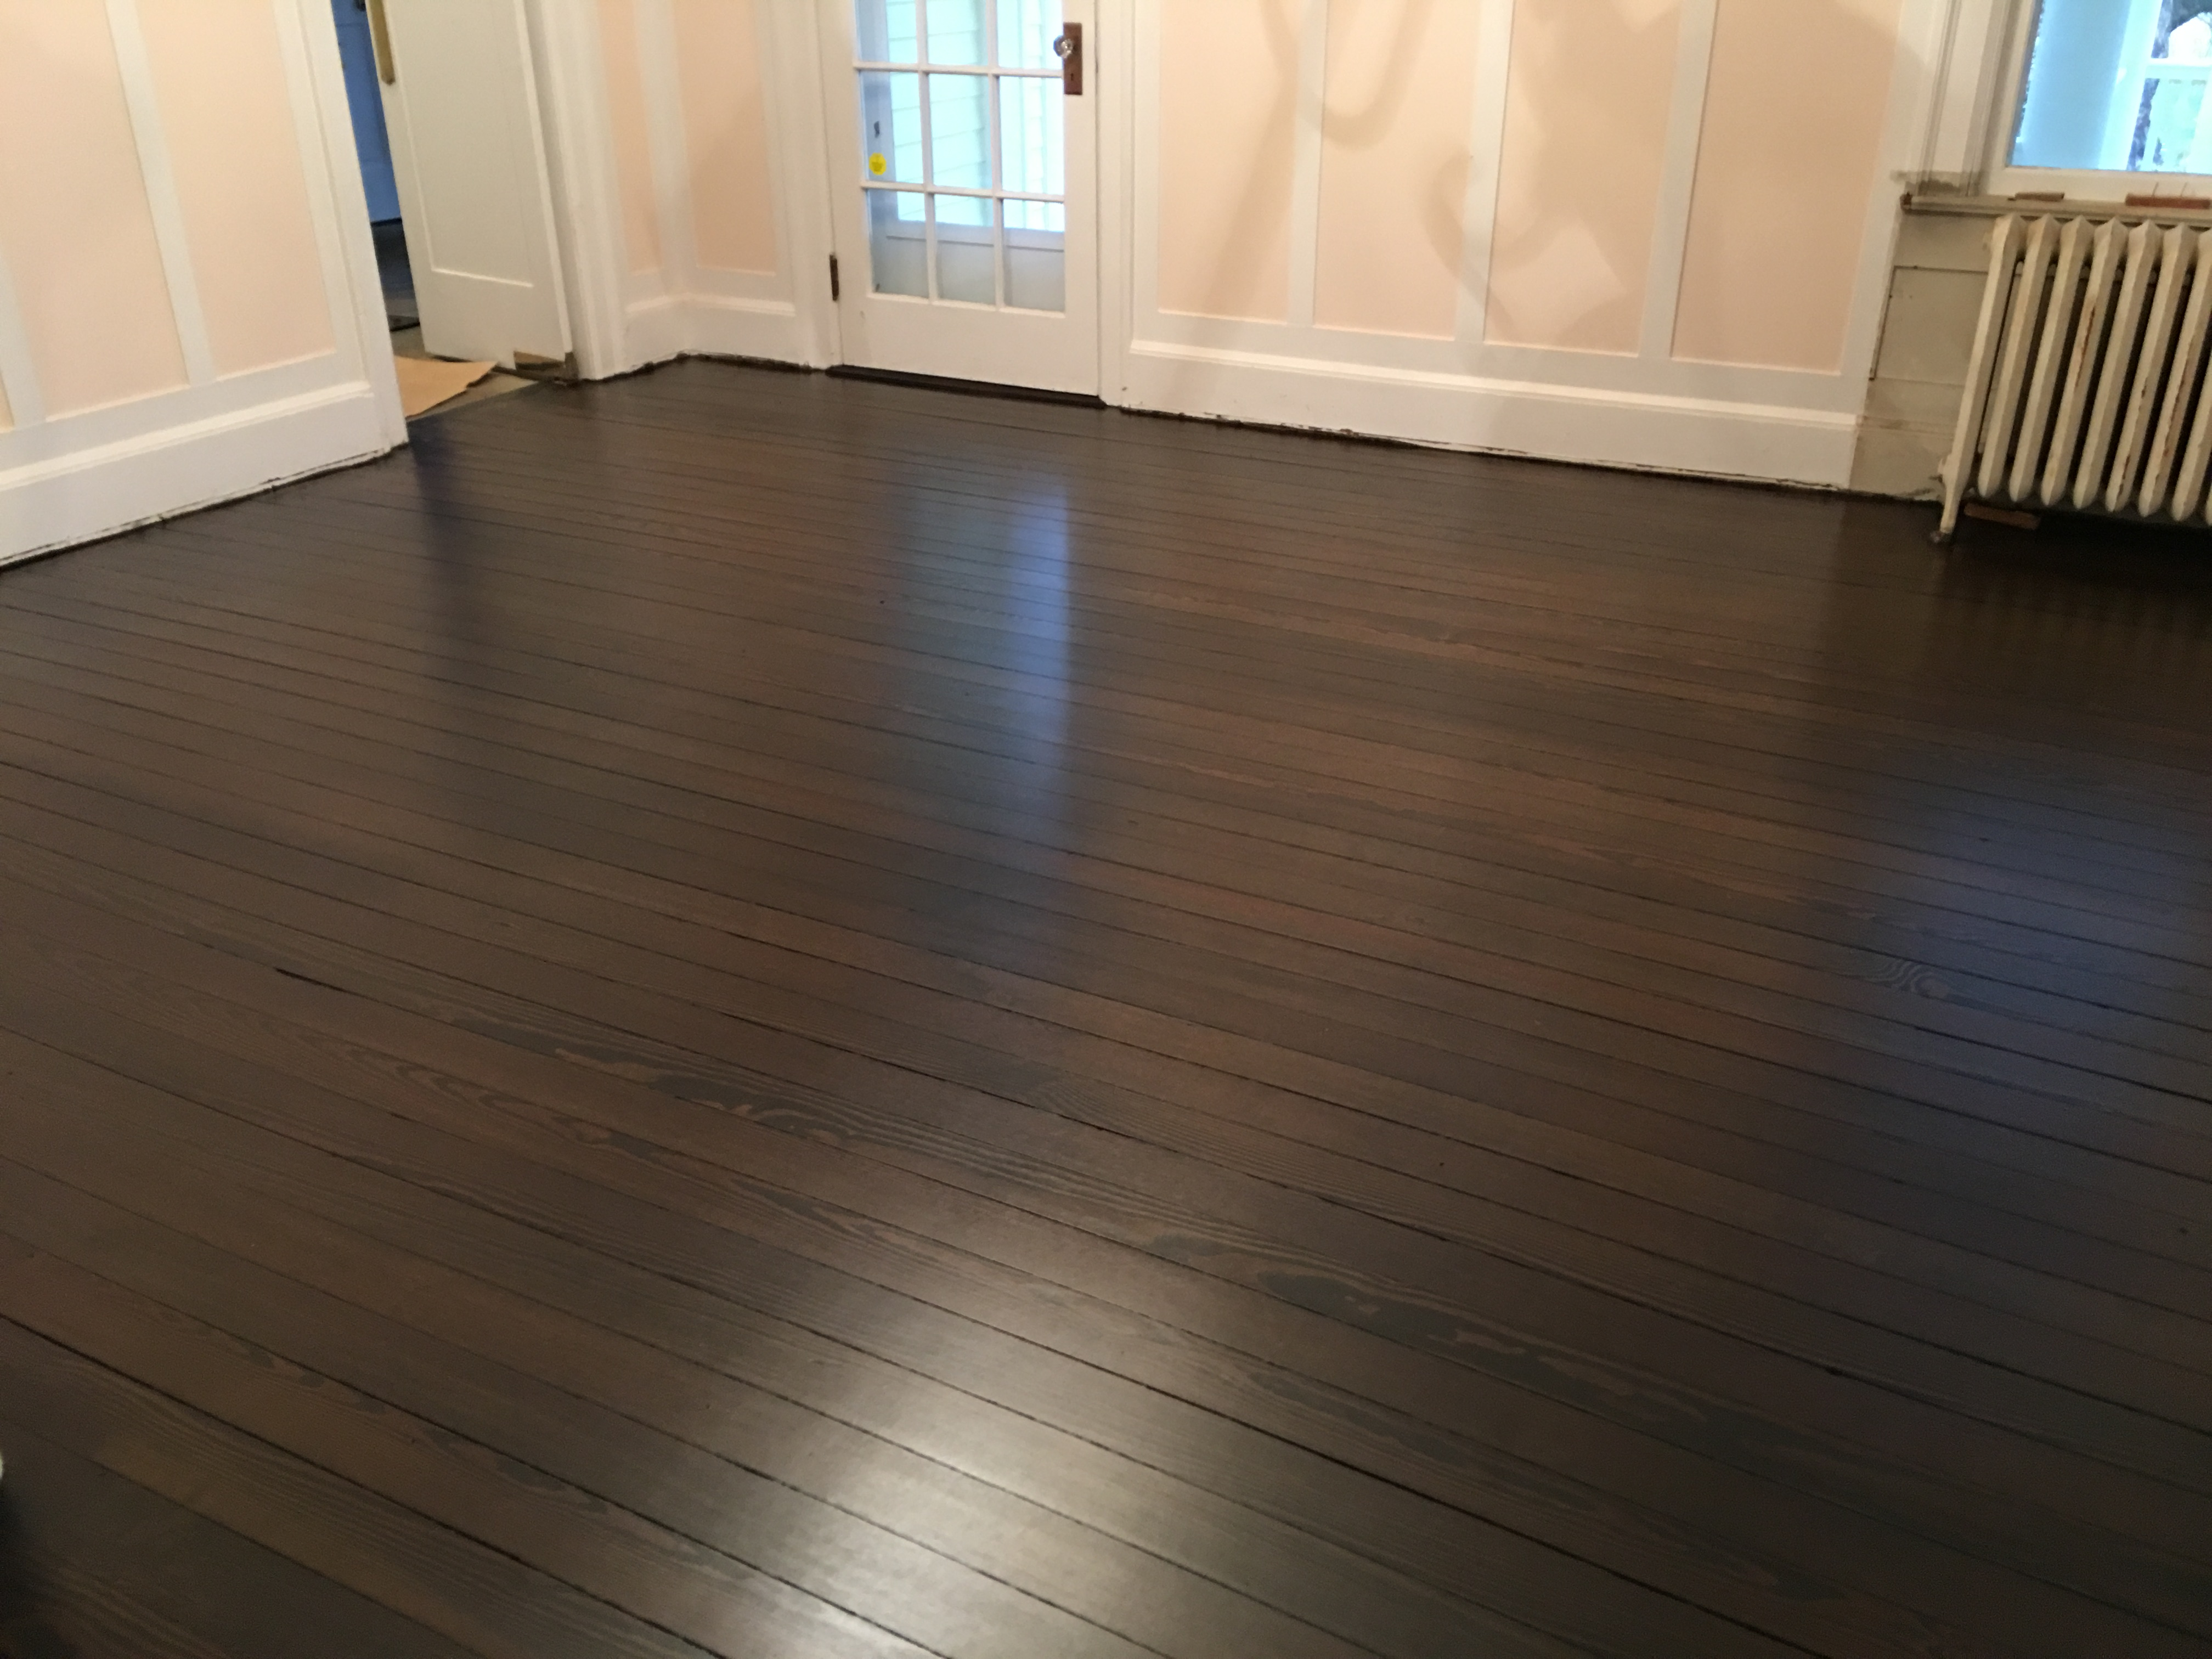 wood floor color trends 2016. By suggesting a customized stain color for the floors  Selecta Flooring of Union County 1820 Historic Wood Floors in Mendham New Jersey